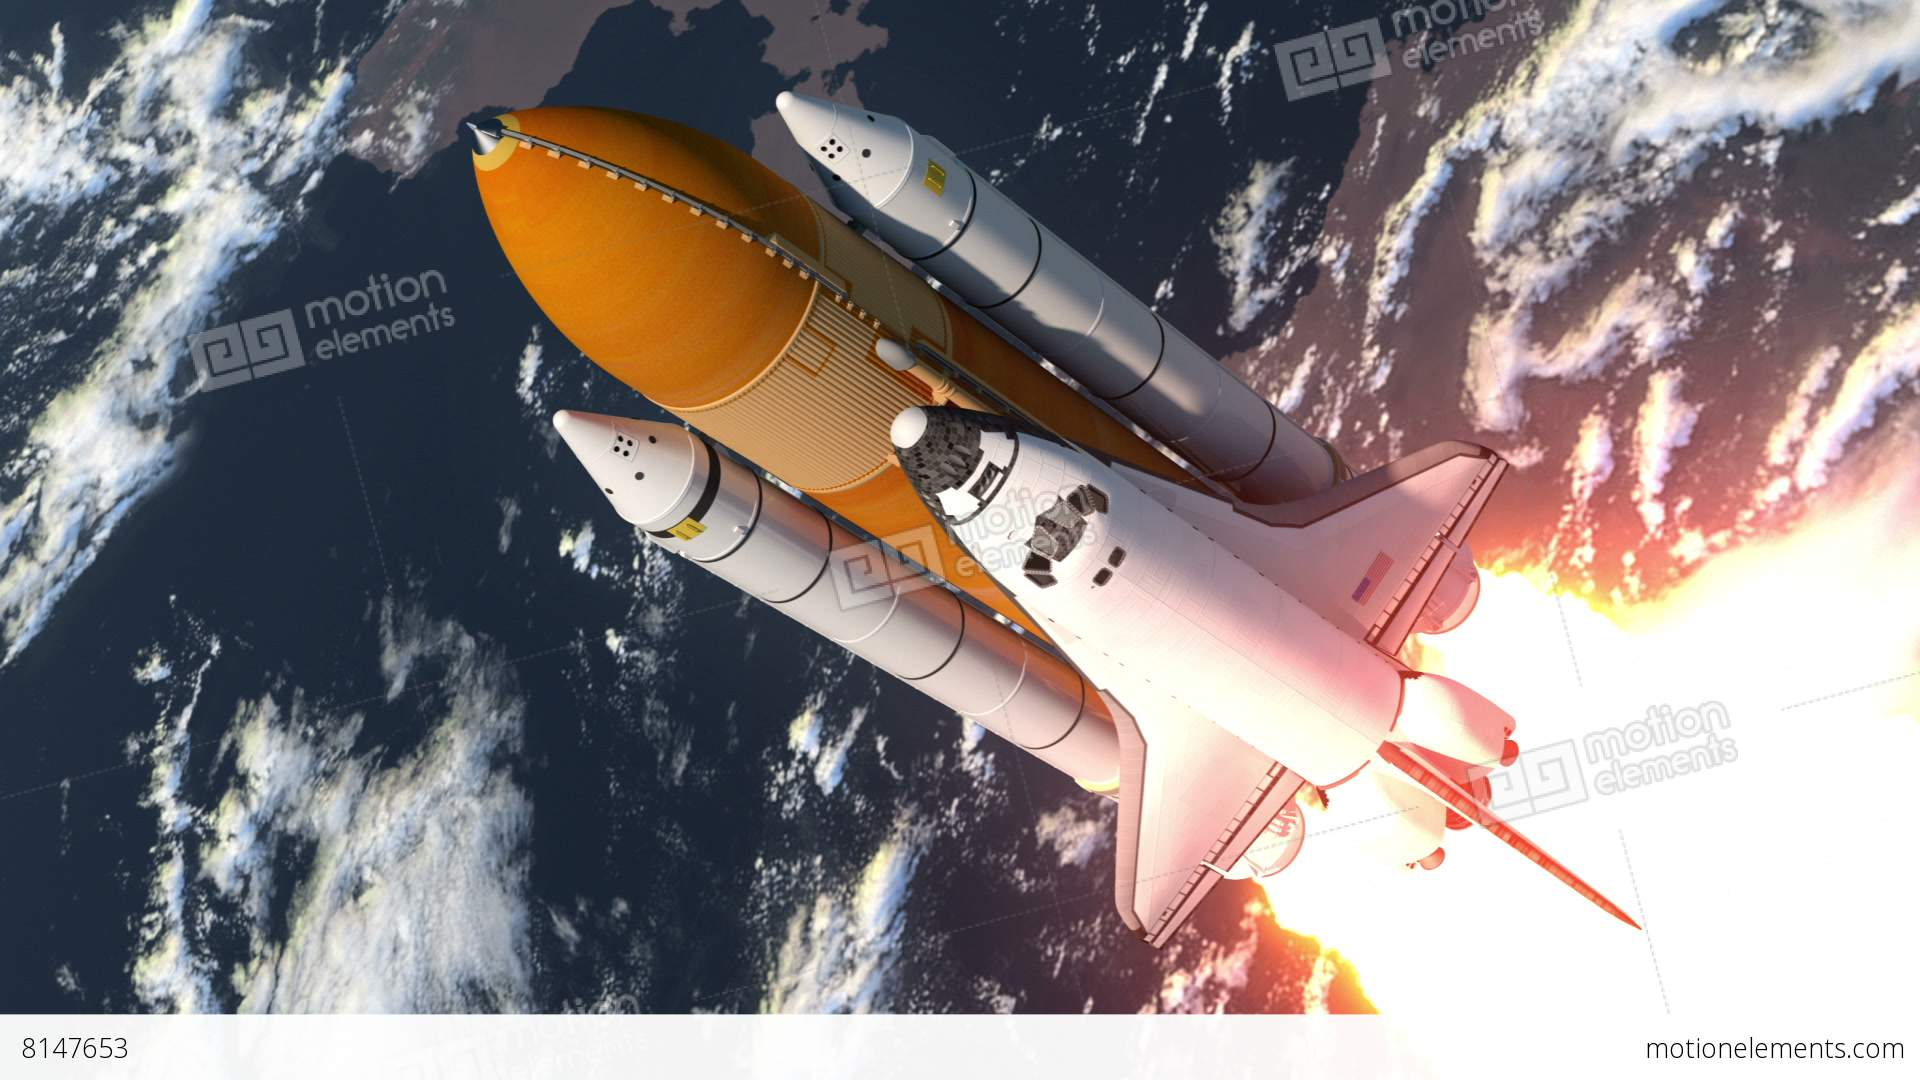 space shuttle animation - photo #24